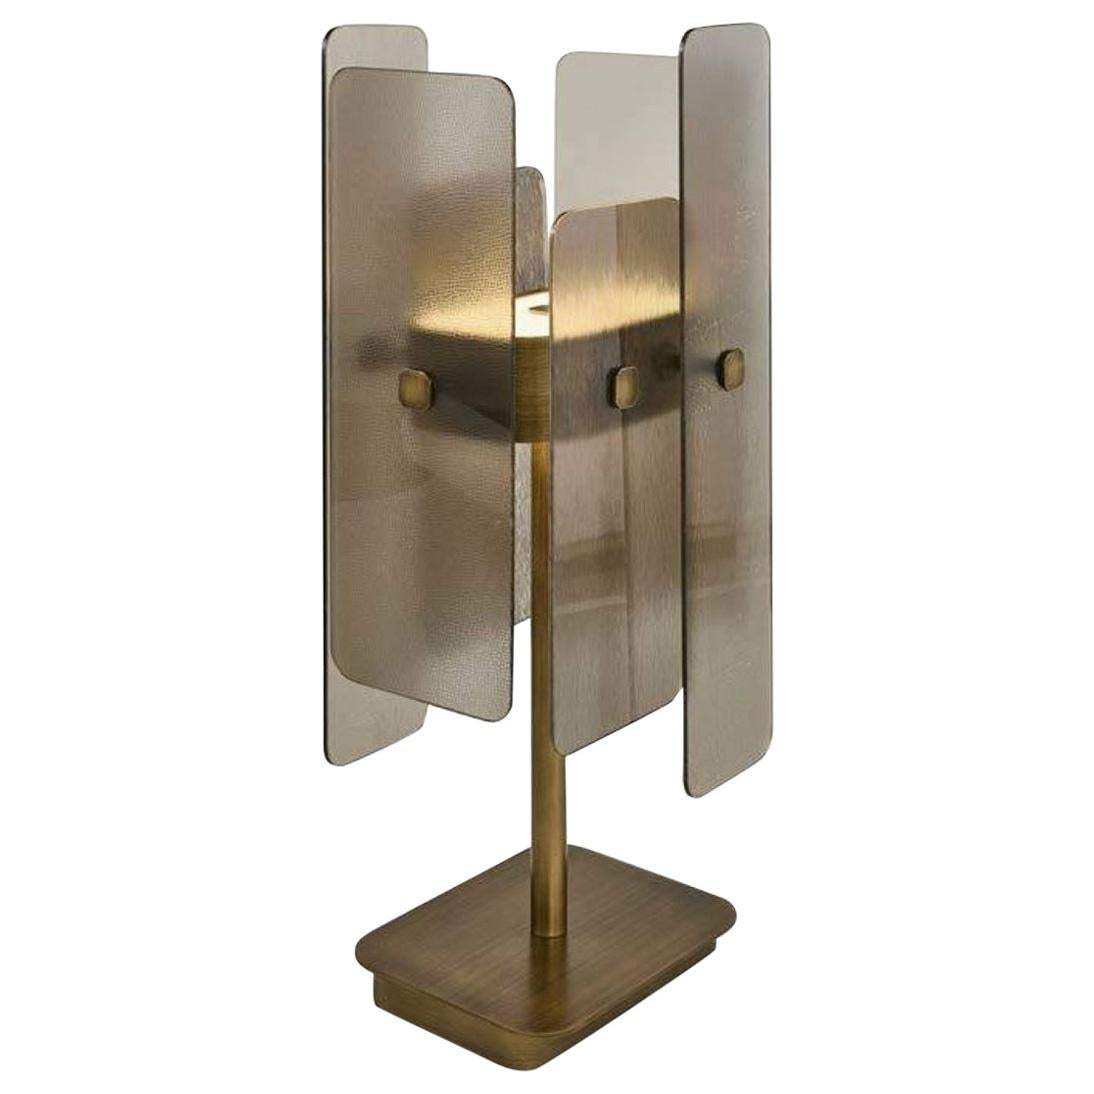 Stylish Table Lamp Brass Frame Antique Bronze or Champagne Finish D